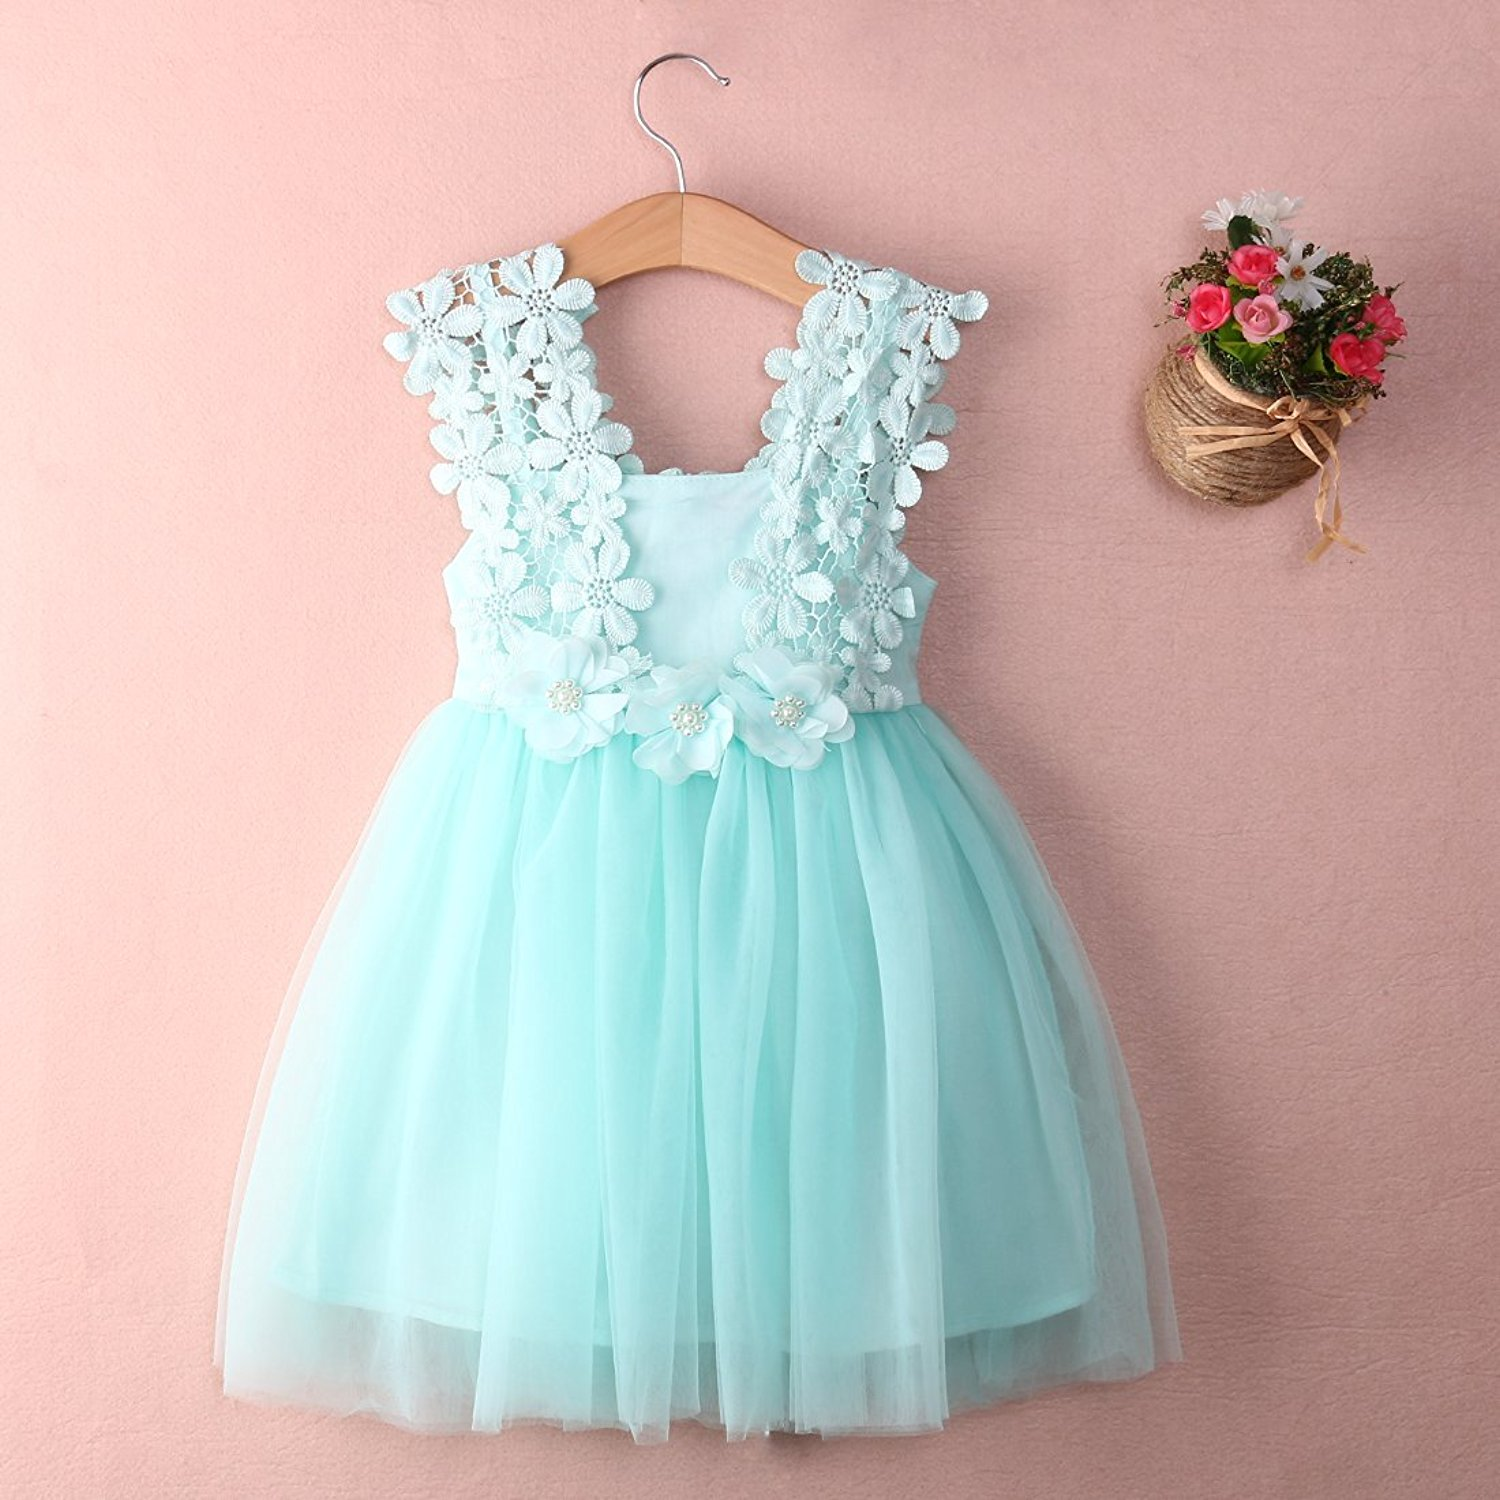 Famous Party Wear Dresses For Baby Girl Crest Wedding Ideas